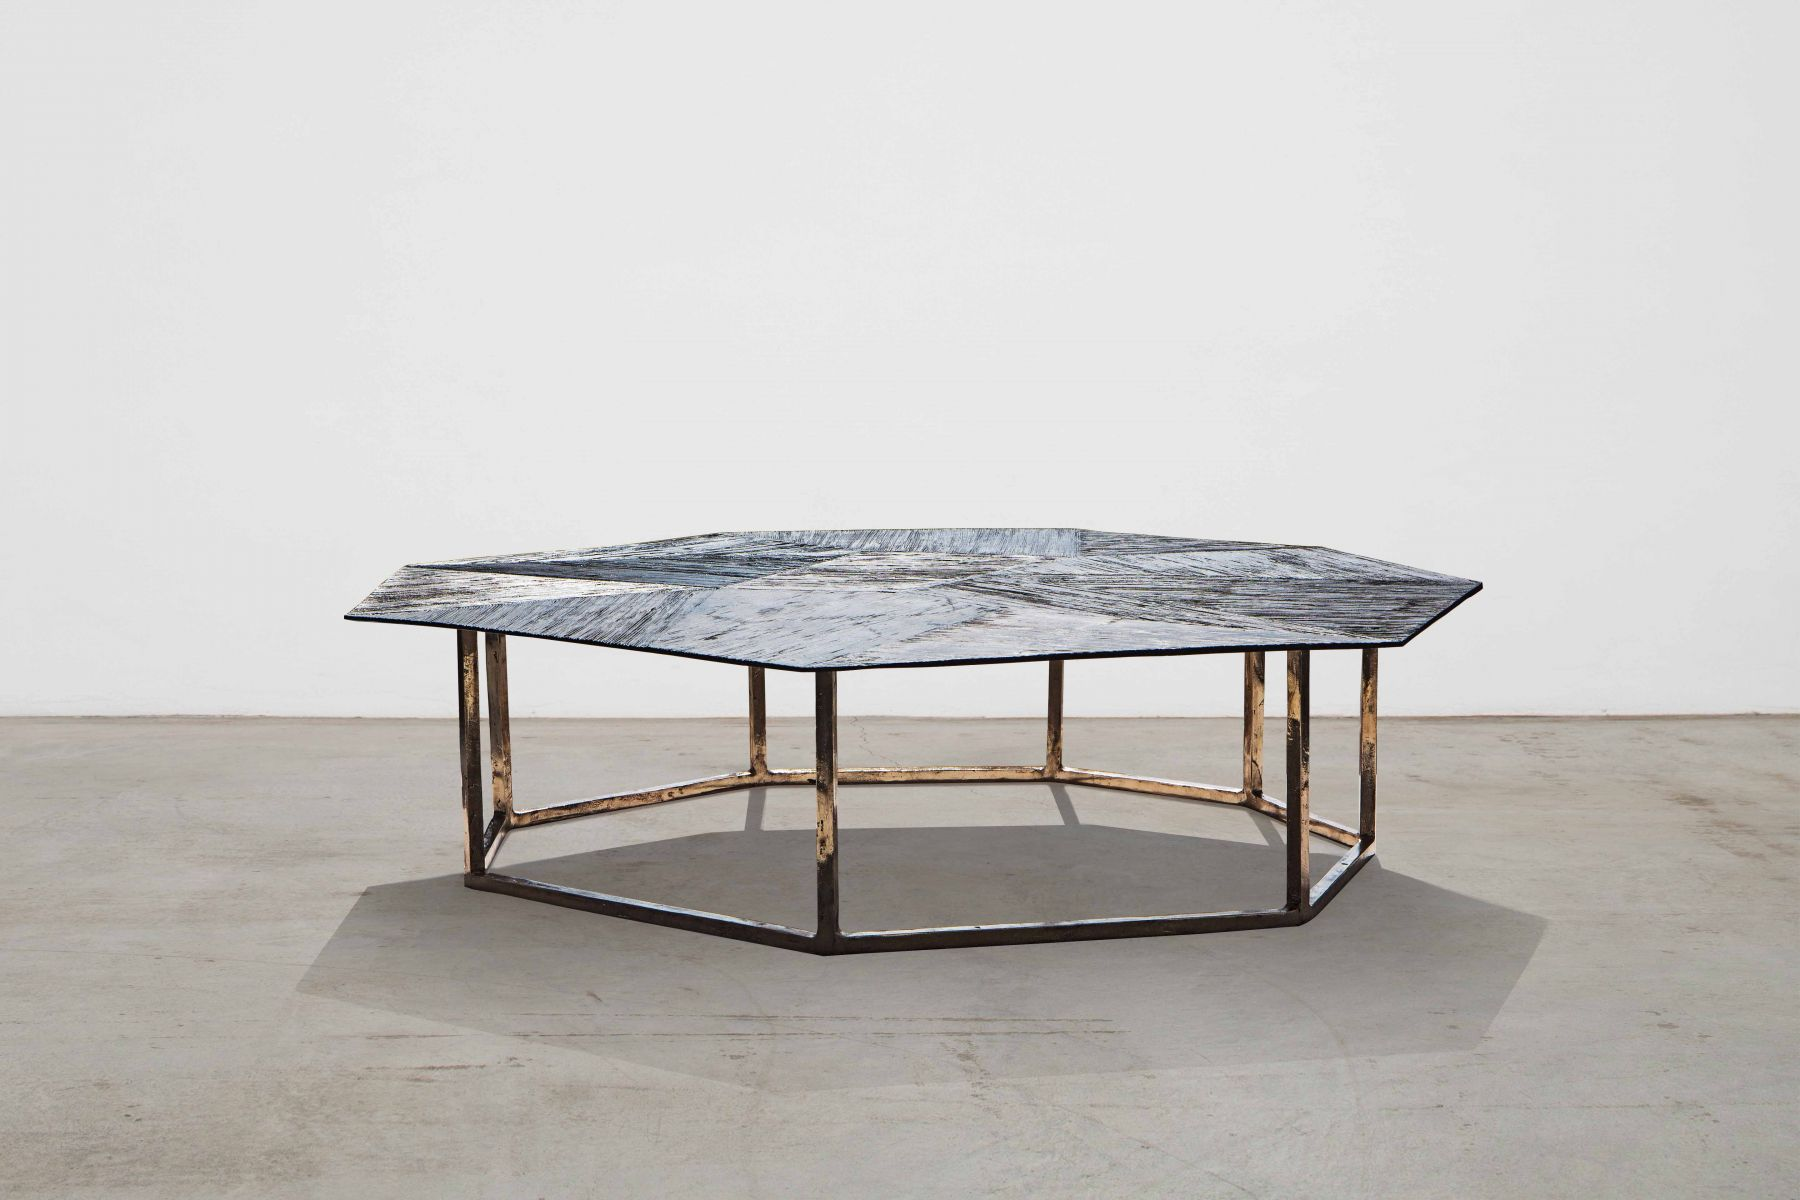 'Raggi' collection - octagonal low table Osanna Visconti pic-1